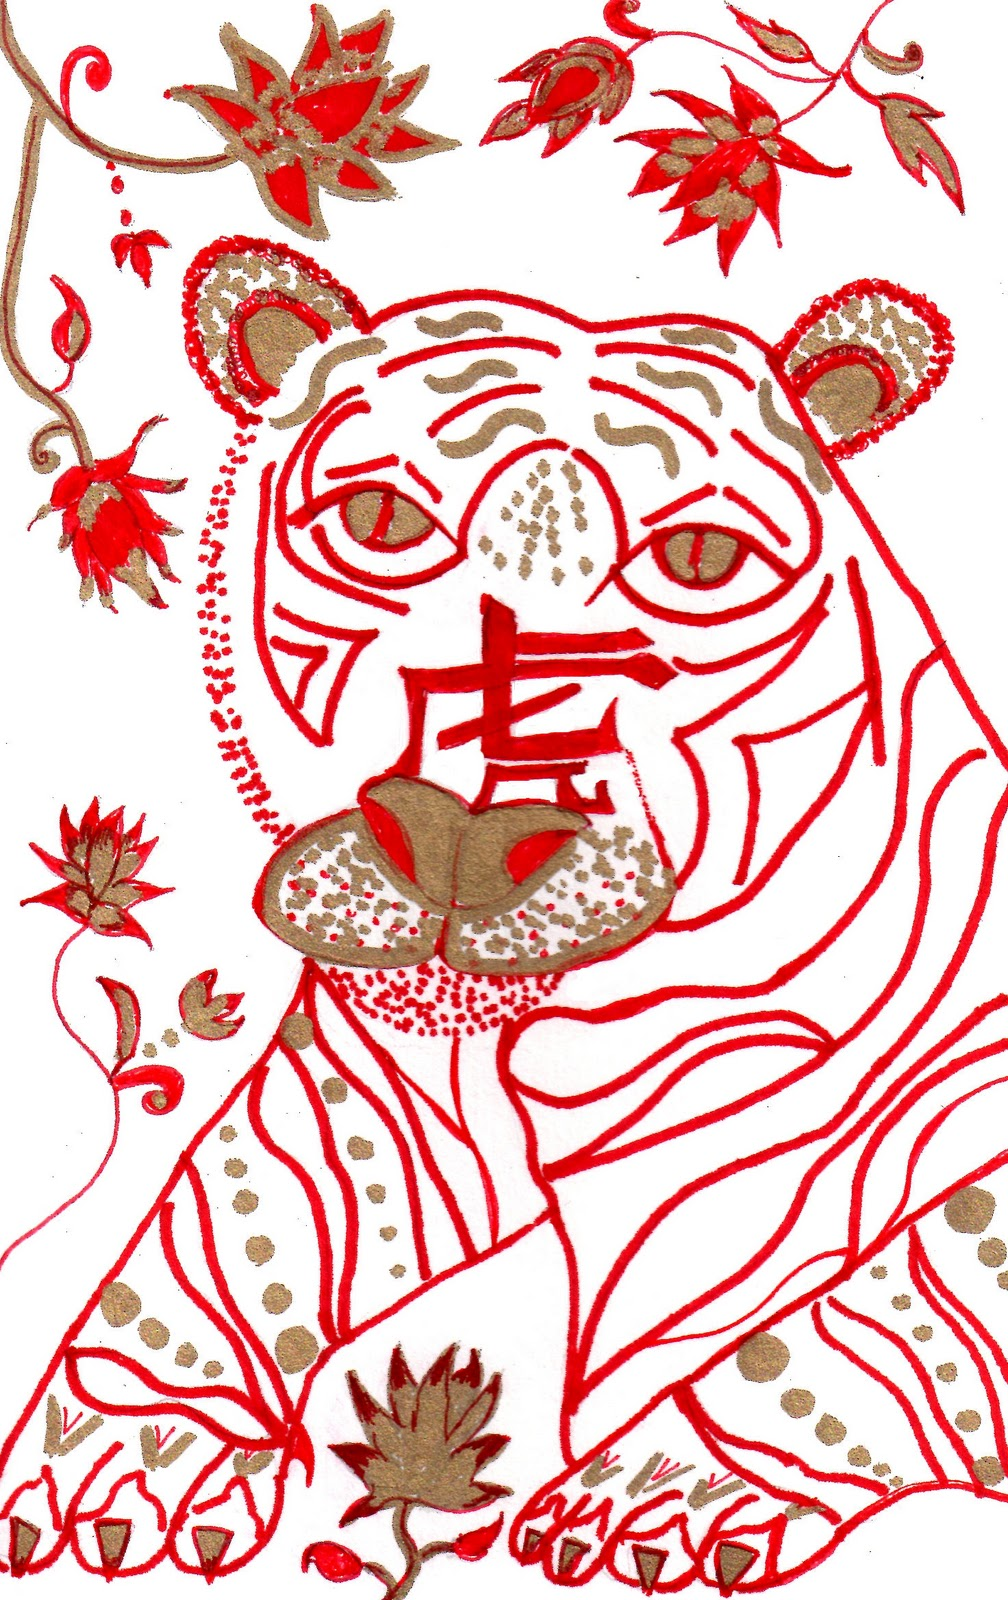 In the center of the tiger s face is the chinese symbol for tiger